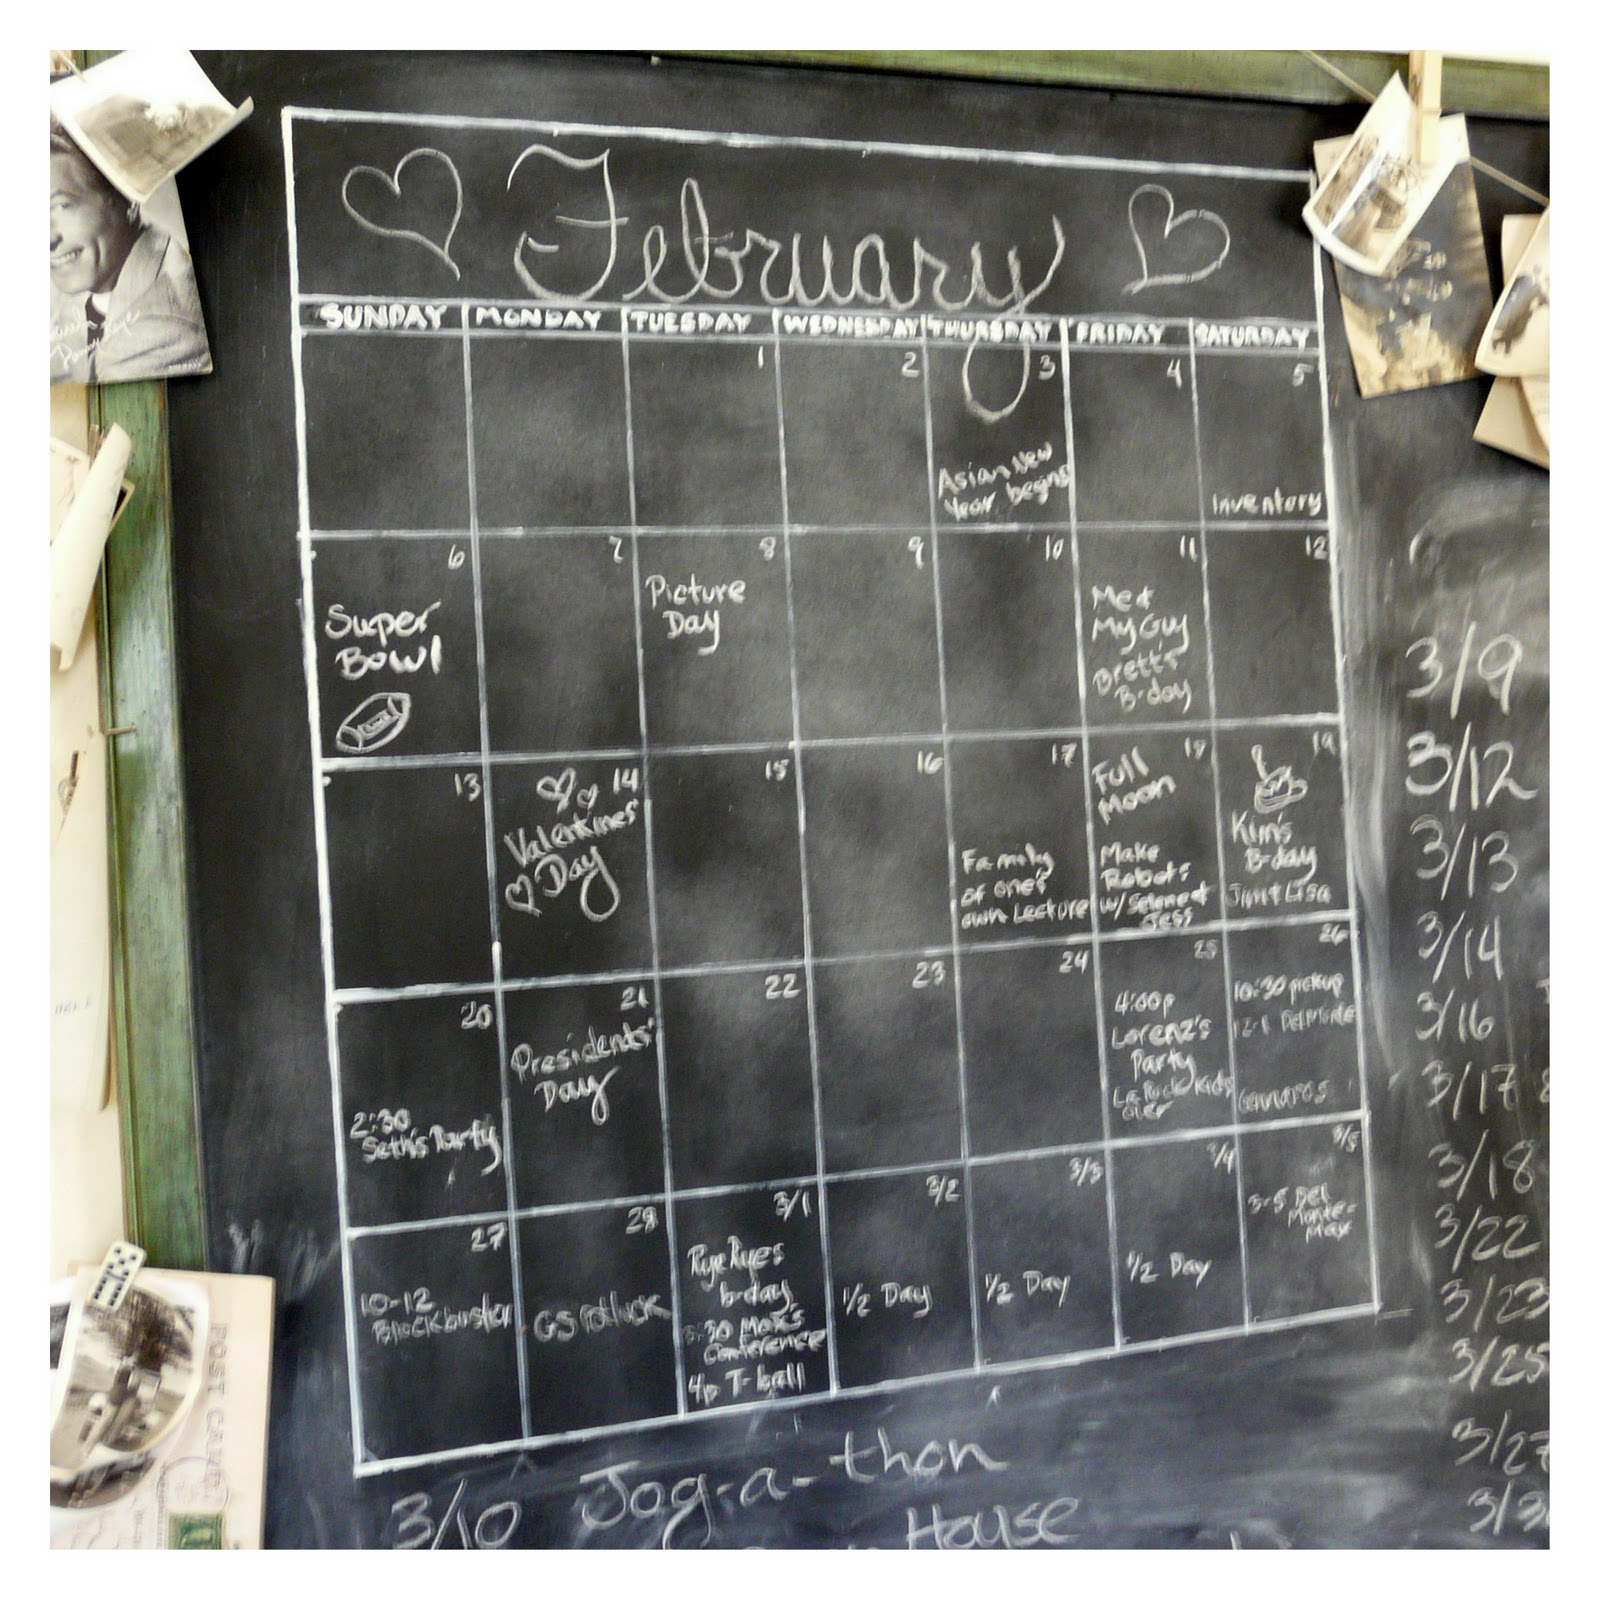 These Large School Room Style Chalkboards Seem To Still Be Plentiful In Second Hand Stores And Can Usually Be Picked Up For A Song